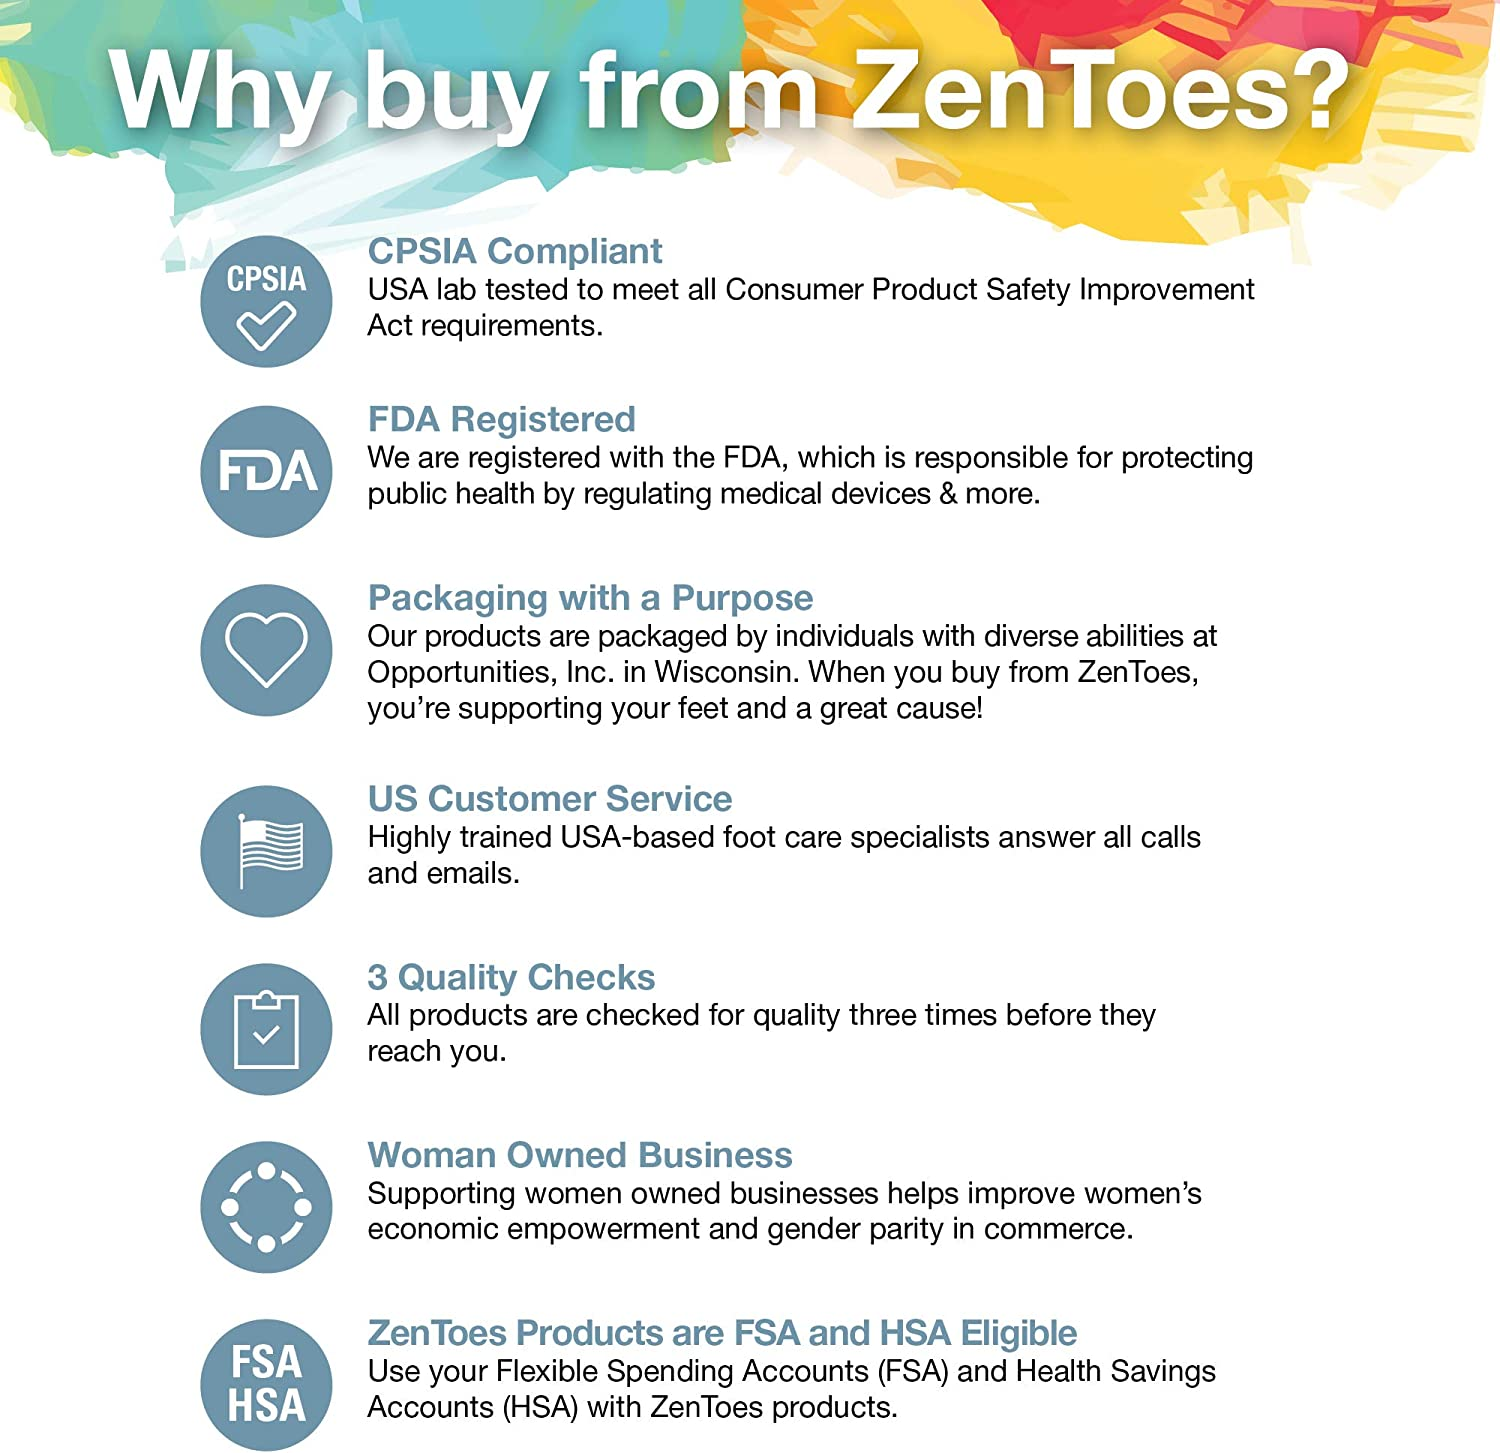 ZenToes 5 Pack Toe Caps Closed Toe Fabric Sleeve Protectors with Gel Lining, Prevent Corn, Callus, Blister Development Between Toes, Soften and Soothe The Skin (Size Medium): Health & Personal Care